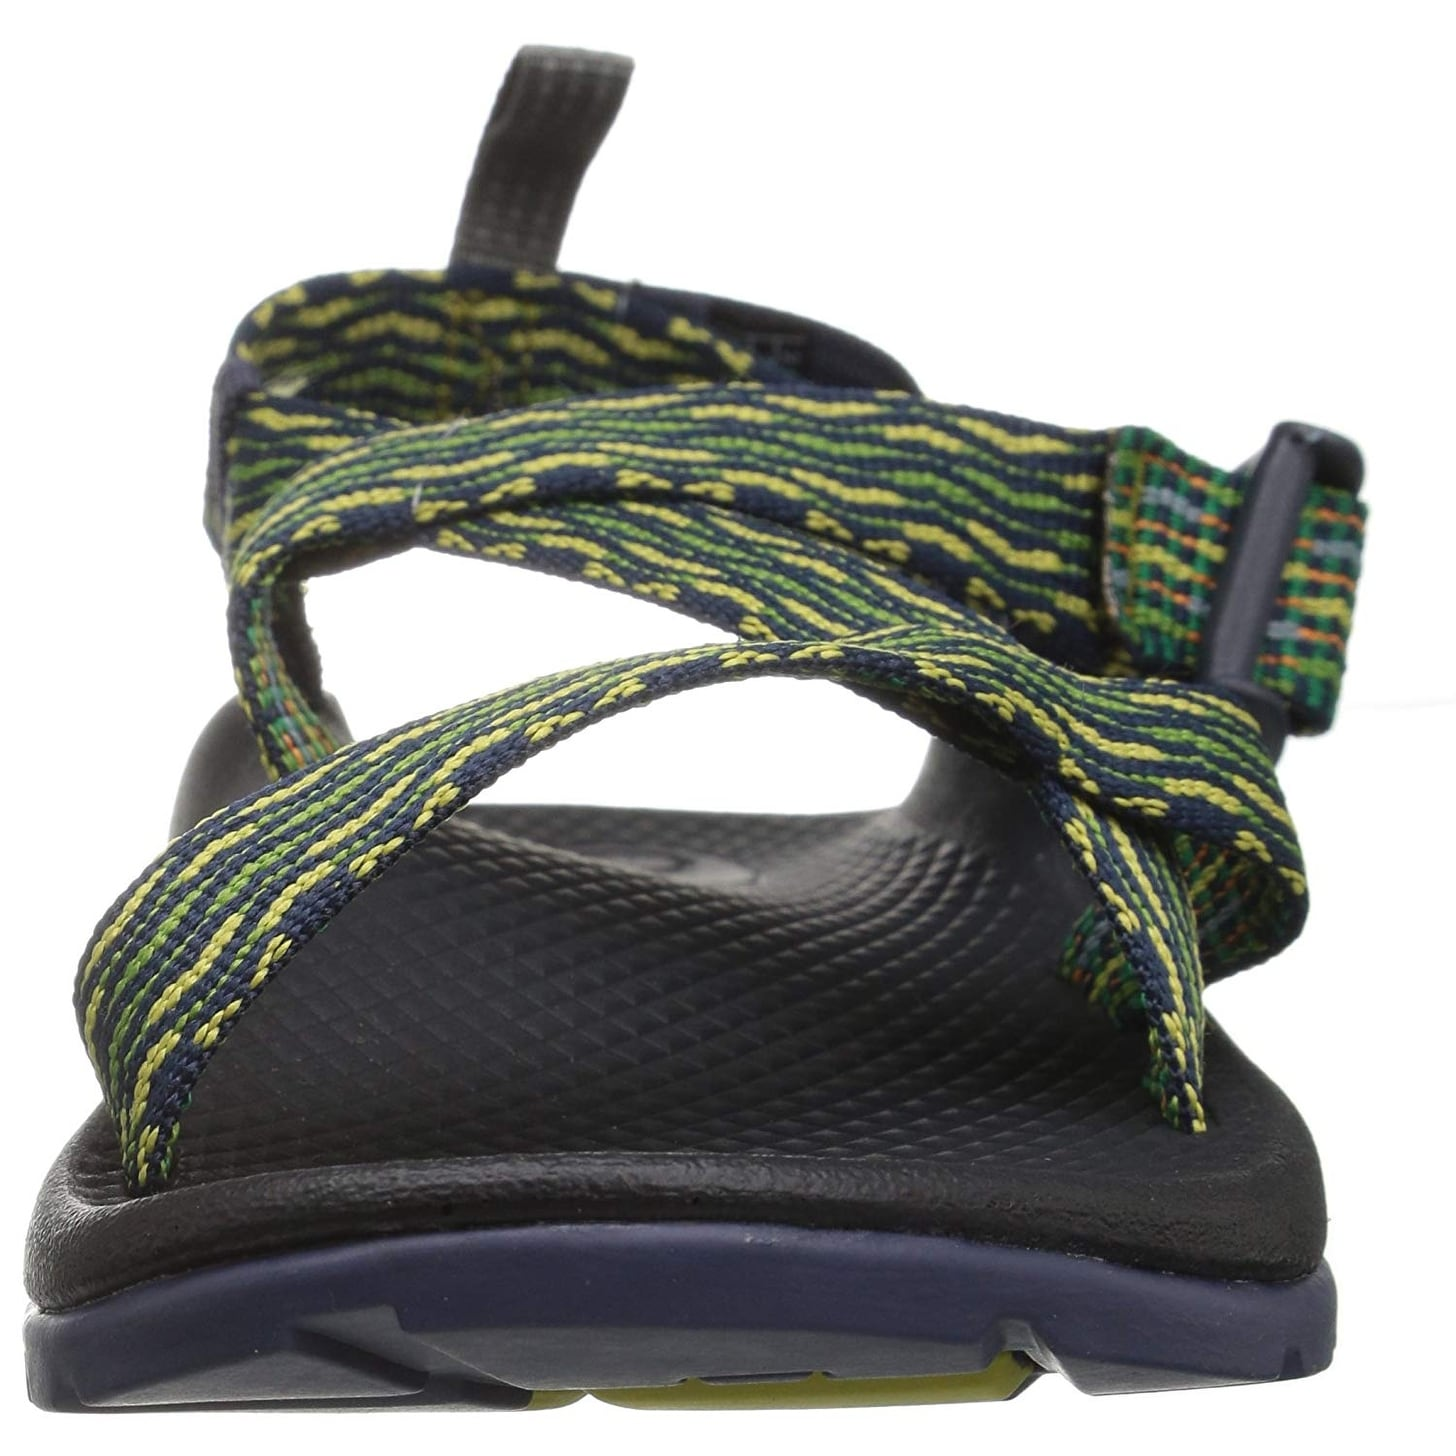 7fce6ee47be5 Shop Kids Chaco Boys Z1 Ecotread Fabric Ankle Strap Sport Sandals - Free  Shipping On Orders Over  45 - Overstock - 22882599